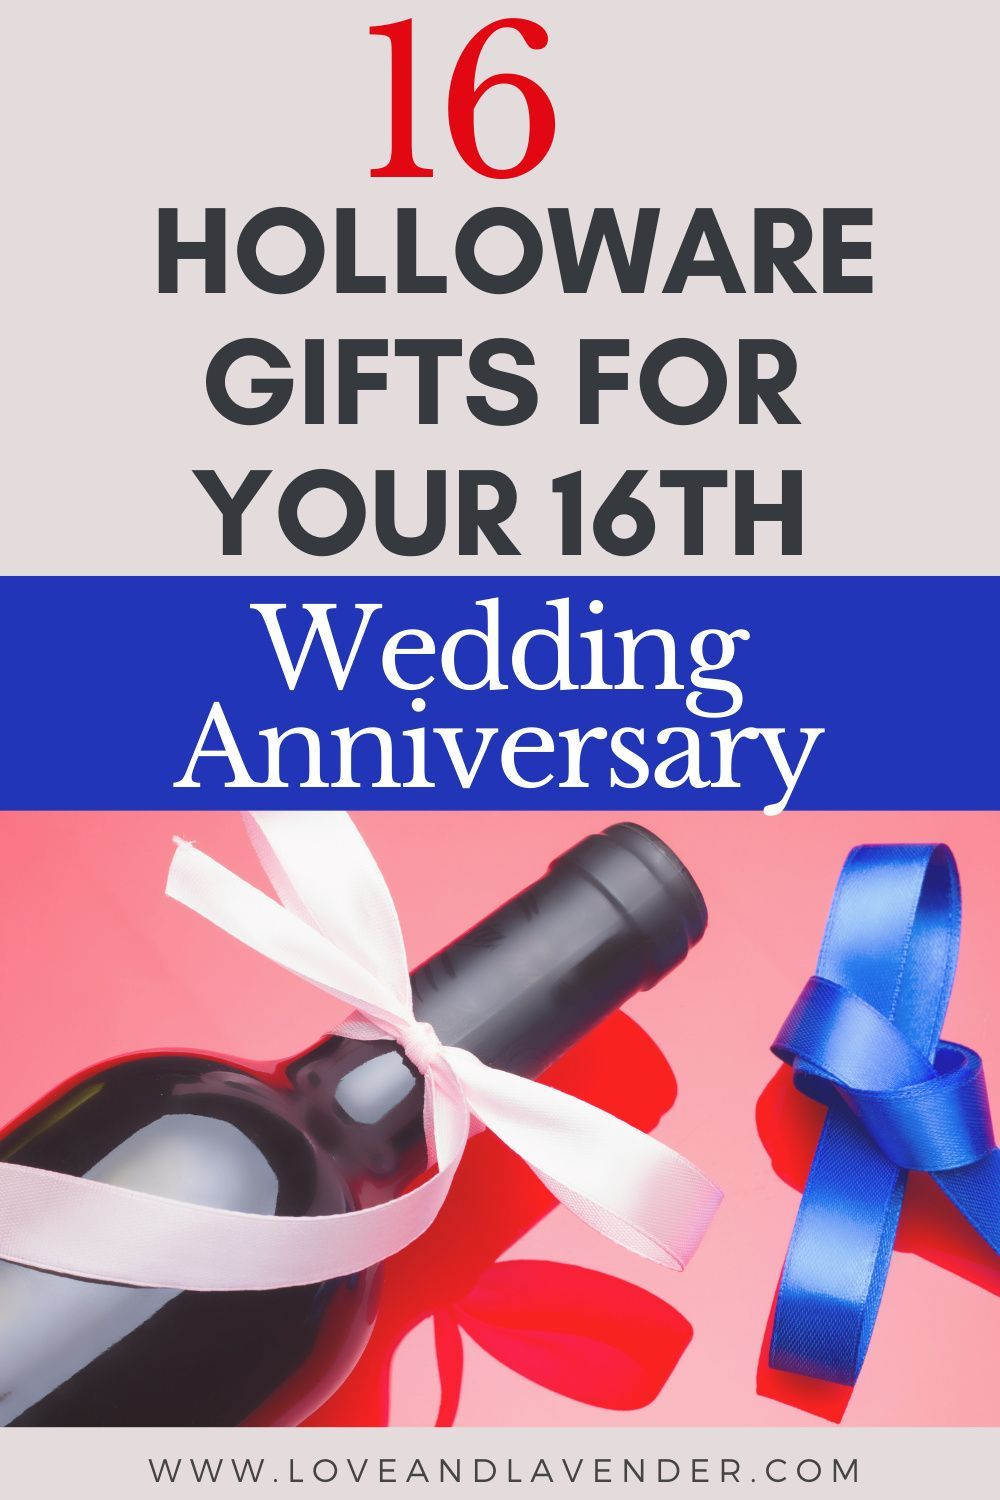 23 Anniversary Gifts For Your Sweet 16th Year 16th Wedding Anniversary 23rd Anniversary Gifts Anniversary Gifts For Him